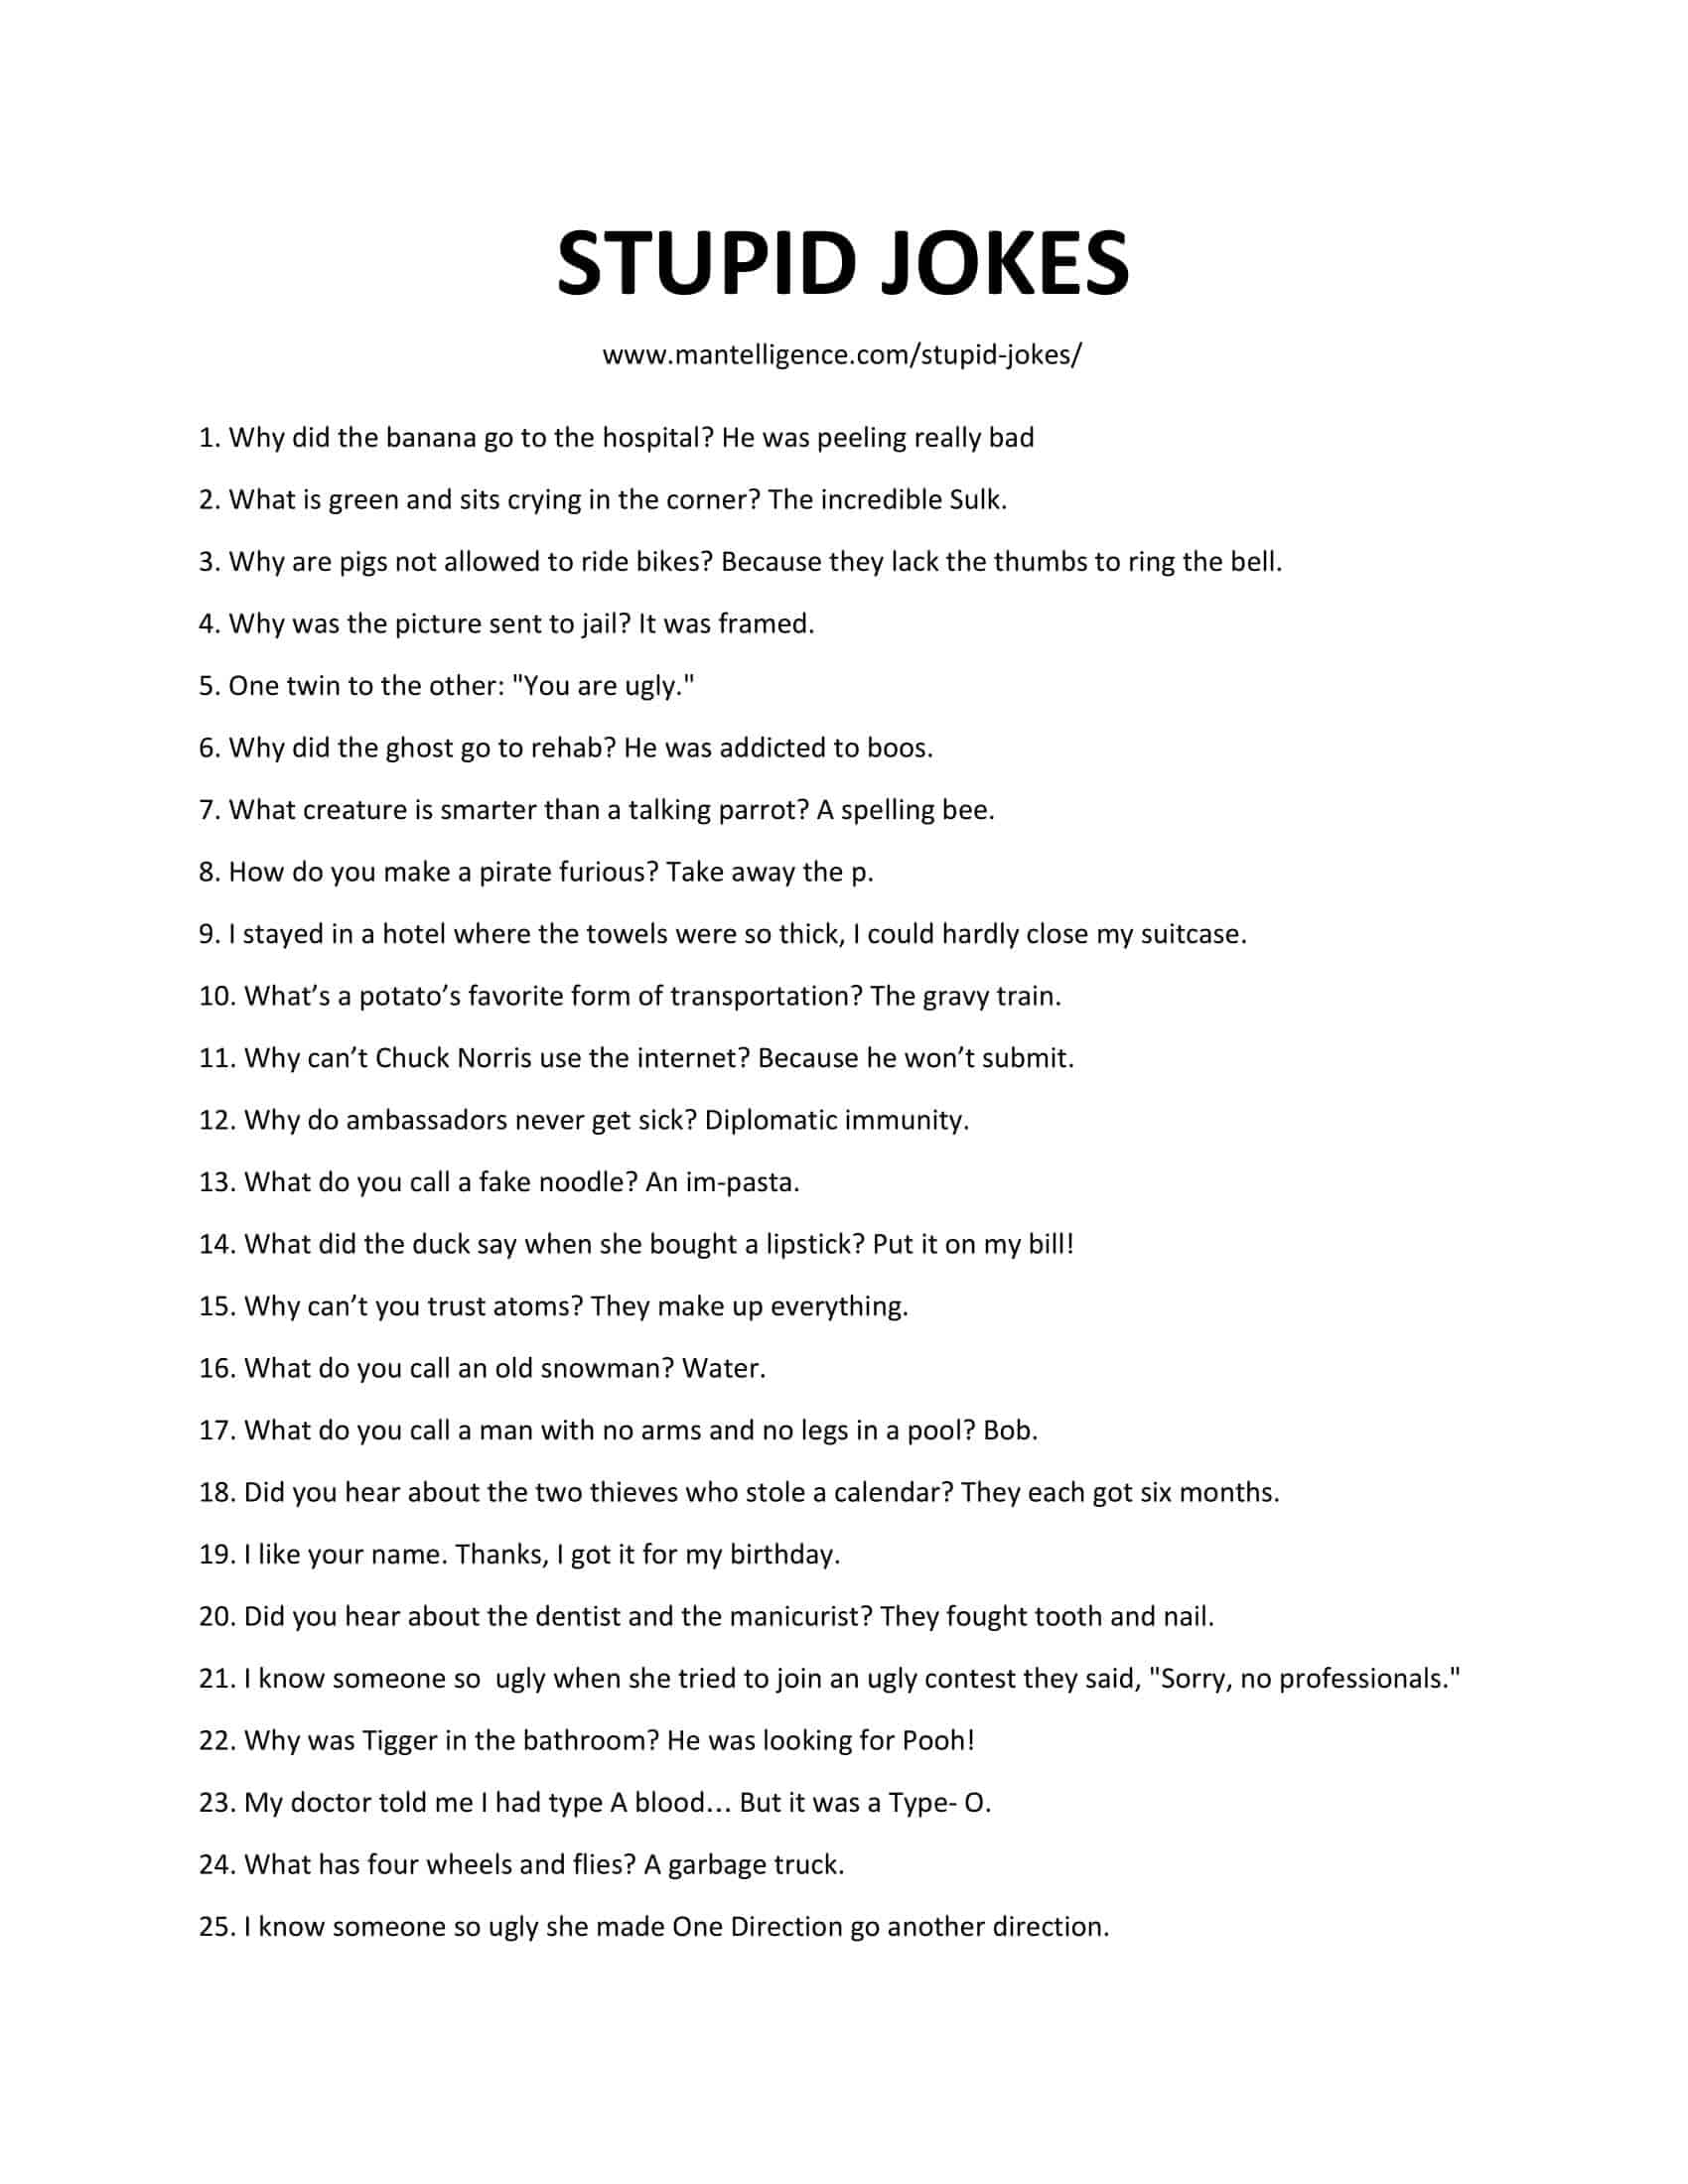 Downloadable and printable list of stupid jokes in pdf or jpg format